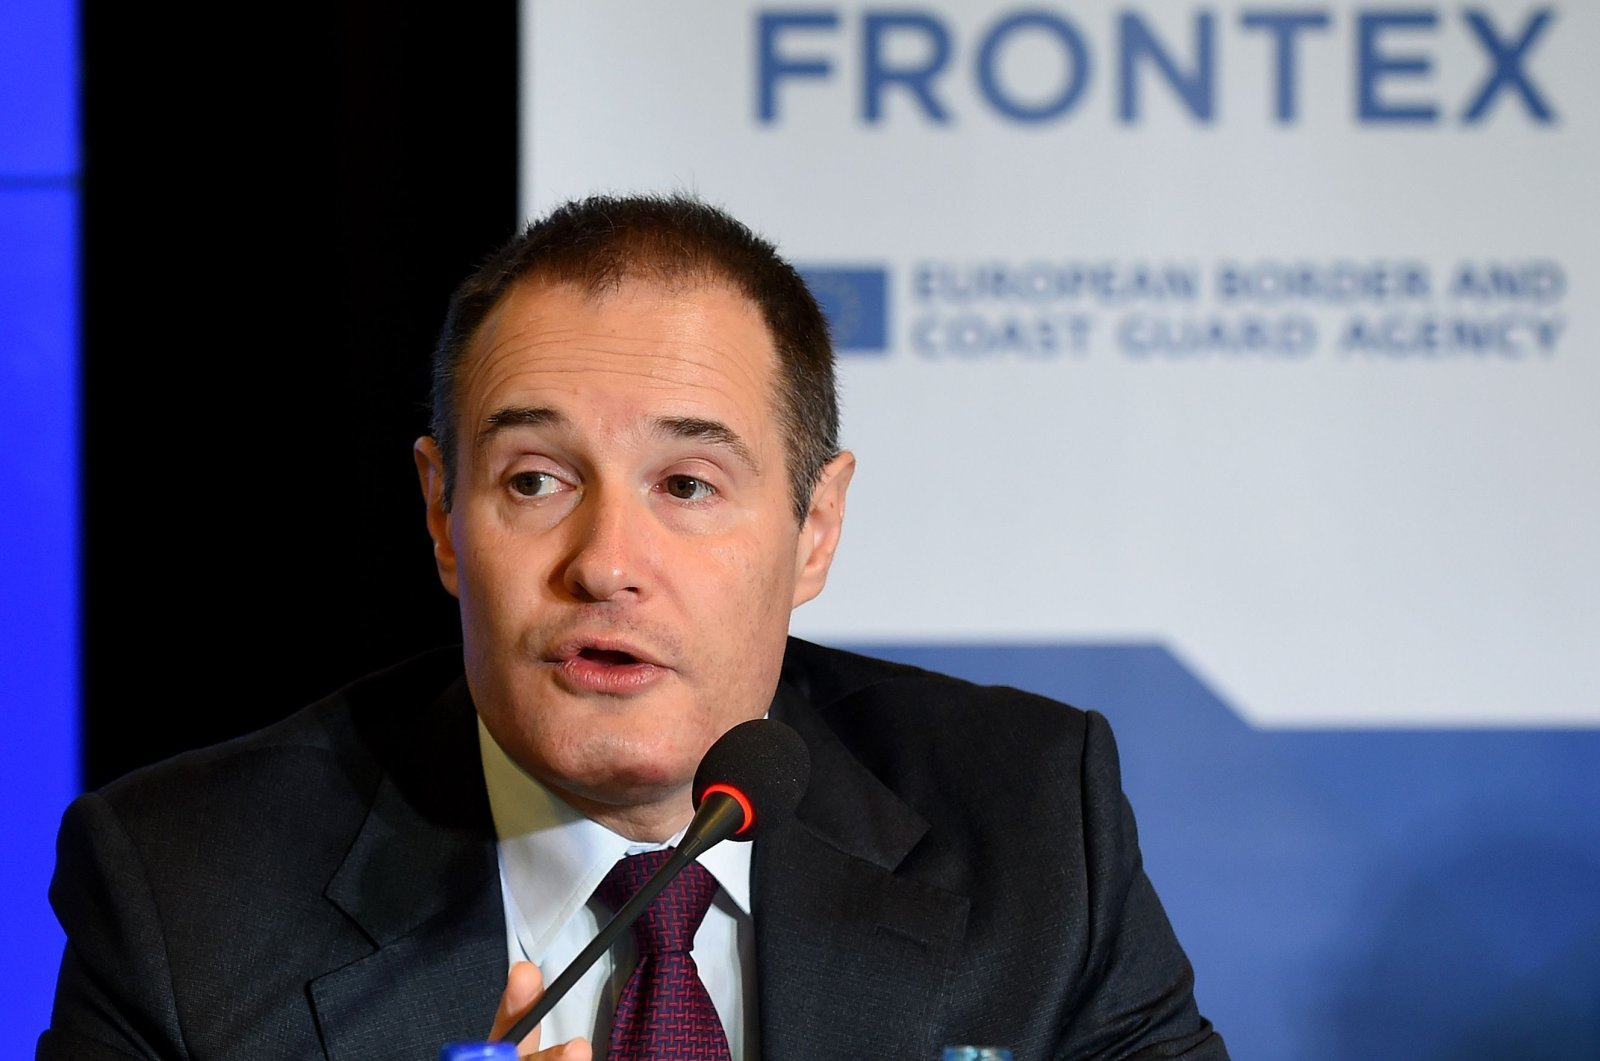 Frontex Executive Director Fabrice Leggeri addresses participants of the European Coast Guard Cooperation Network meeting in Warsaw, Poland, Nov. 8, 2016. (AFP Photo)